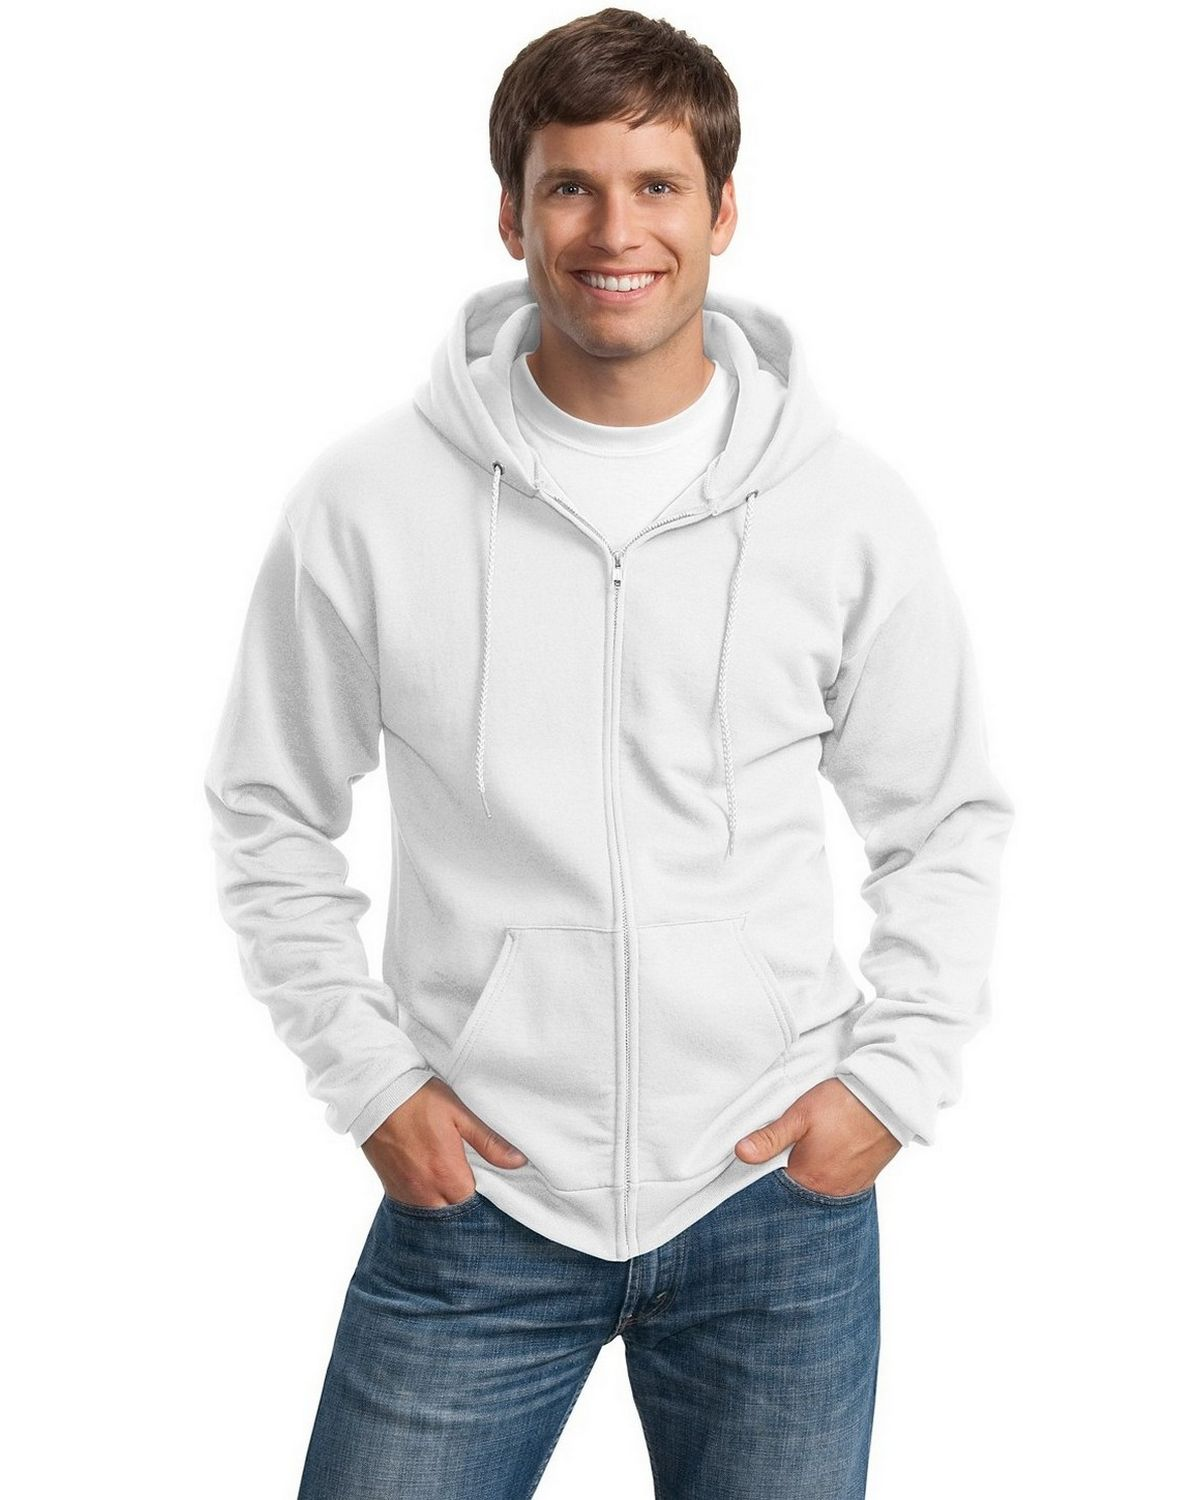 Port & Company PC90ZHT Tall Ultimate Hooded Sweatshirt - White - XLT PC90ZHT